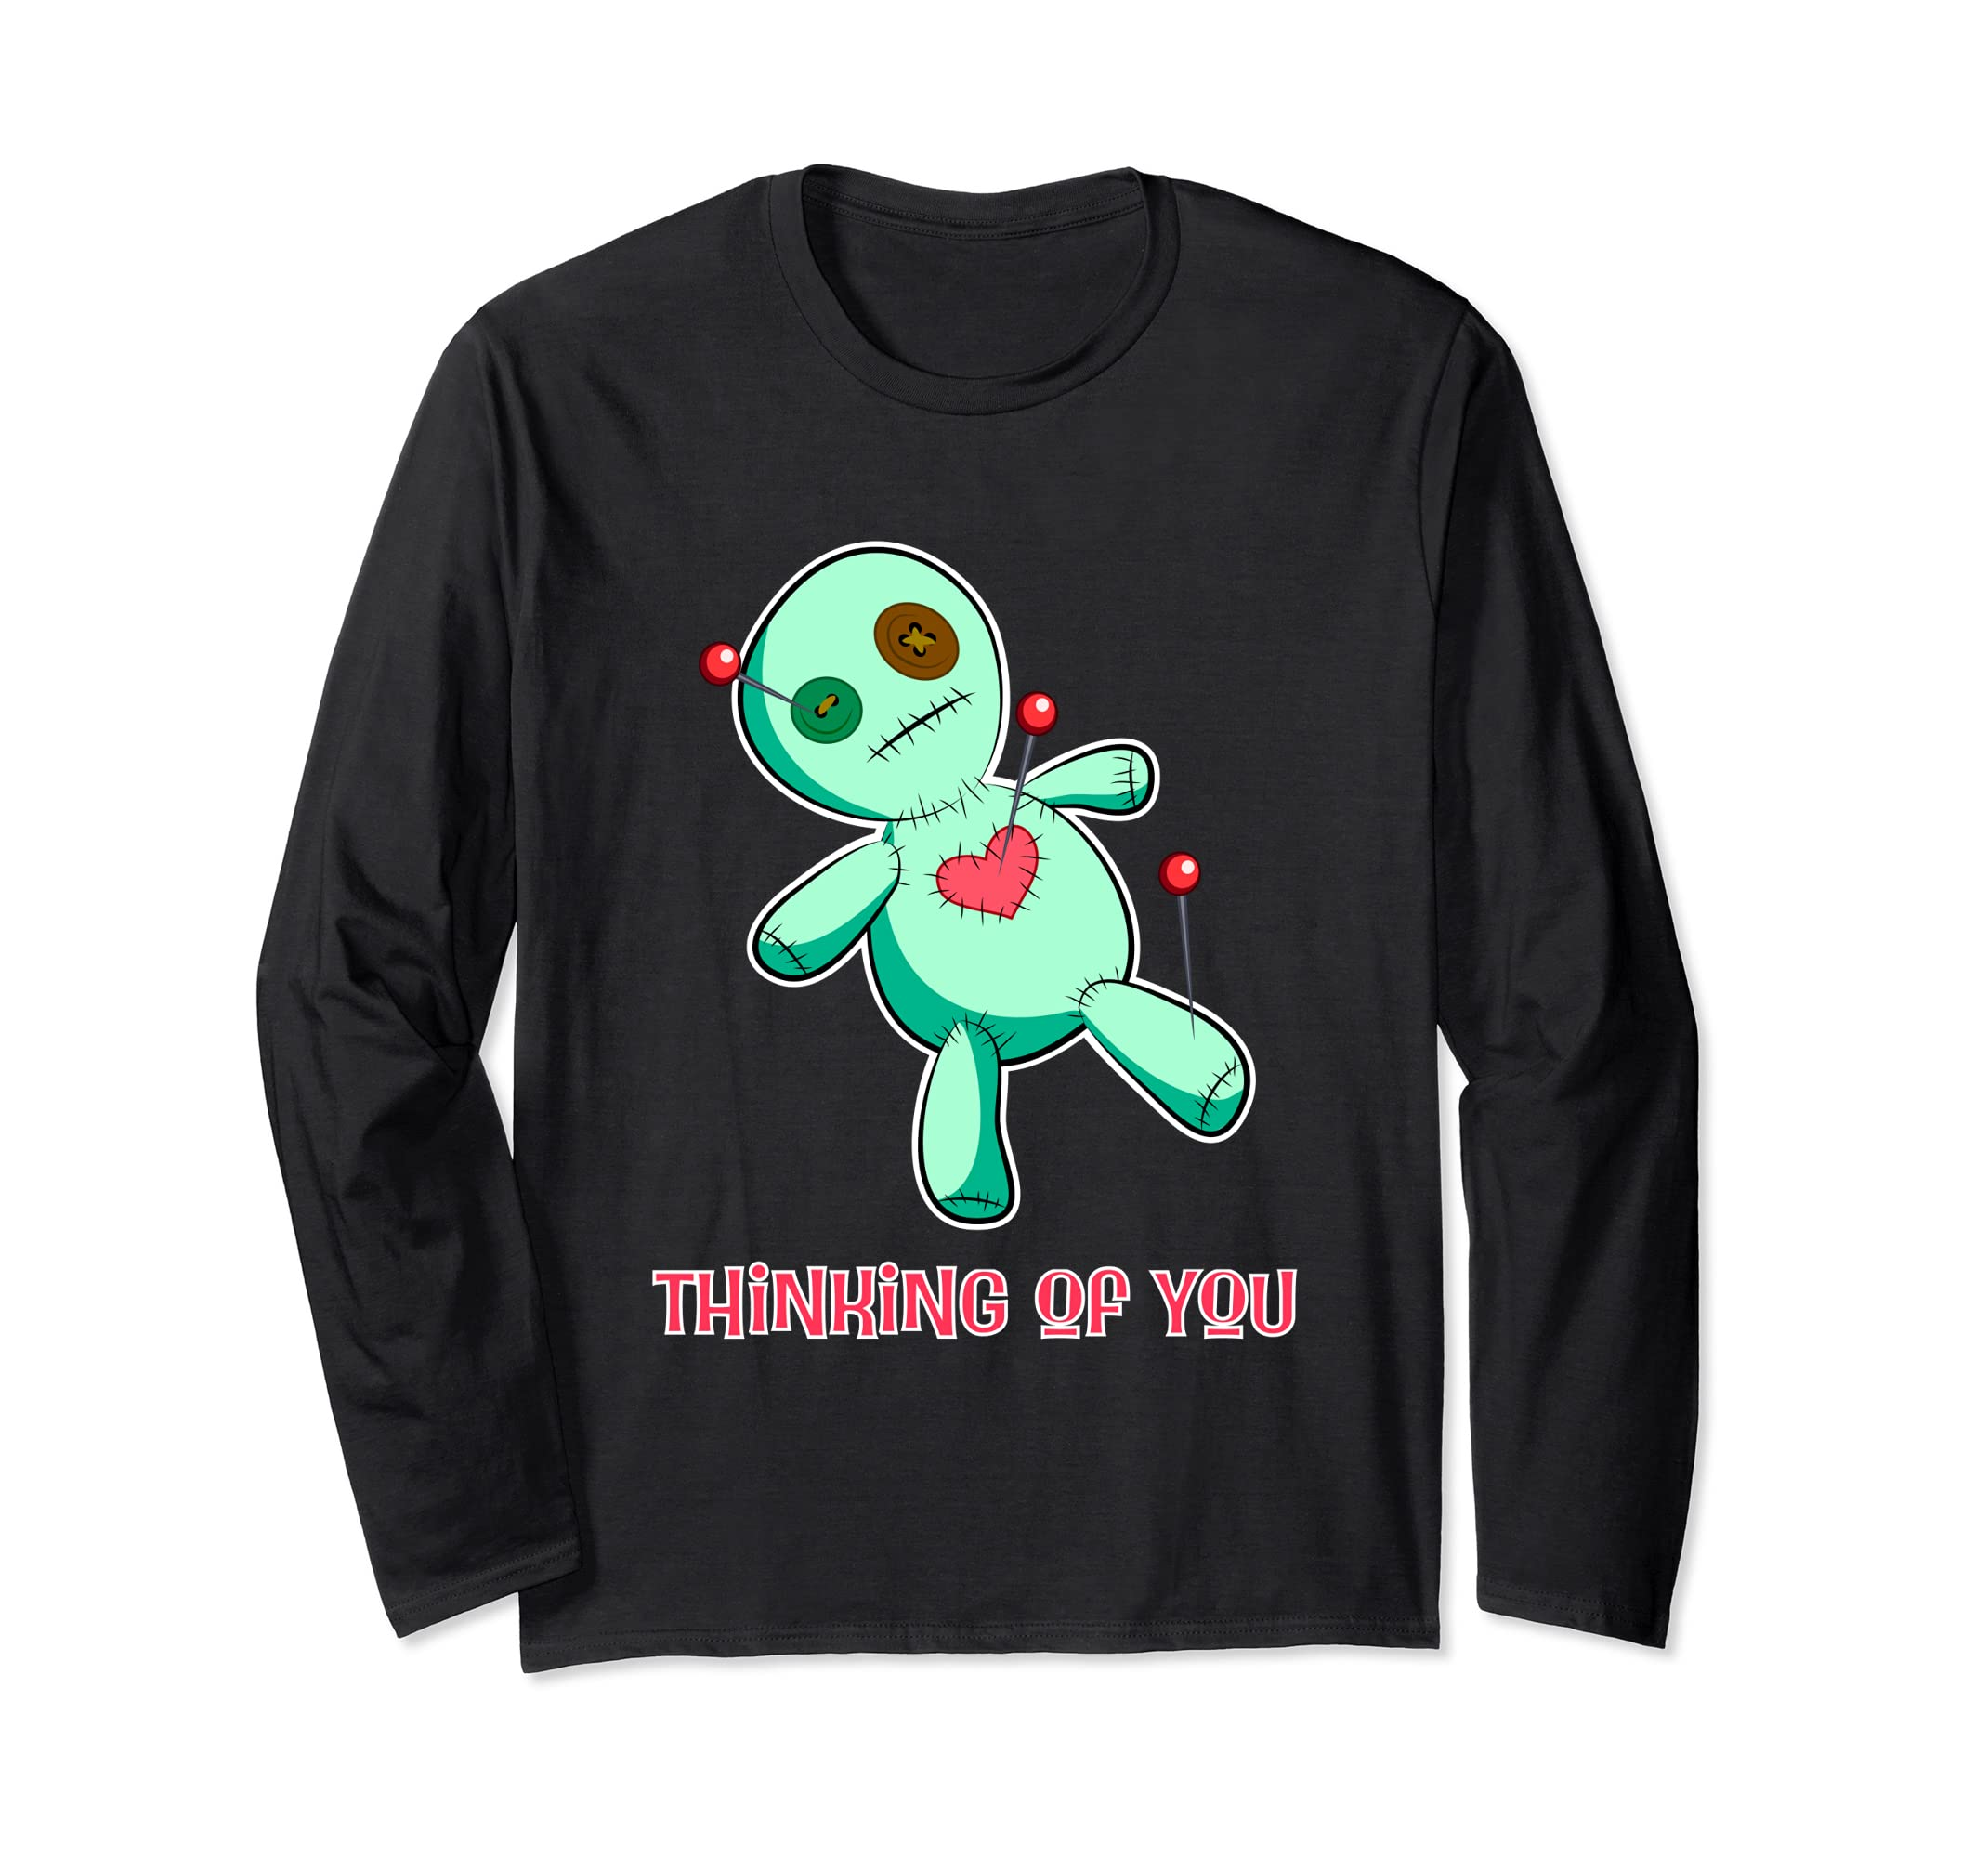 Funny Voodoo Doll Long Sleeved Shirt, Halloween shirt-mt